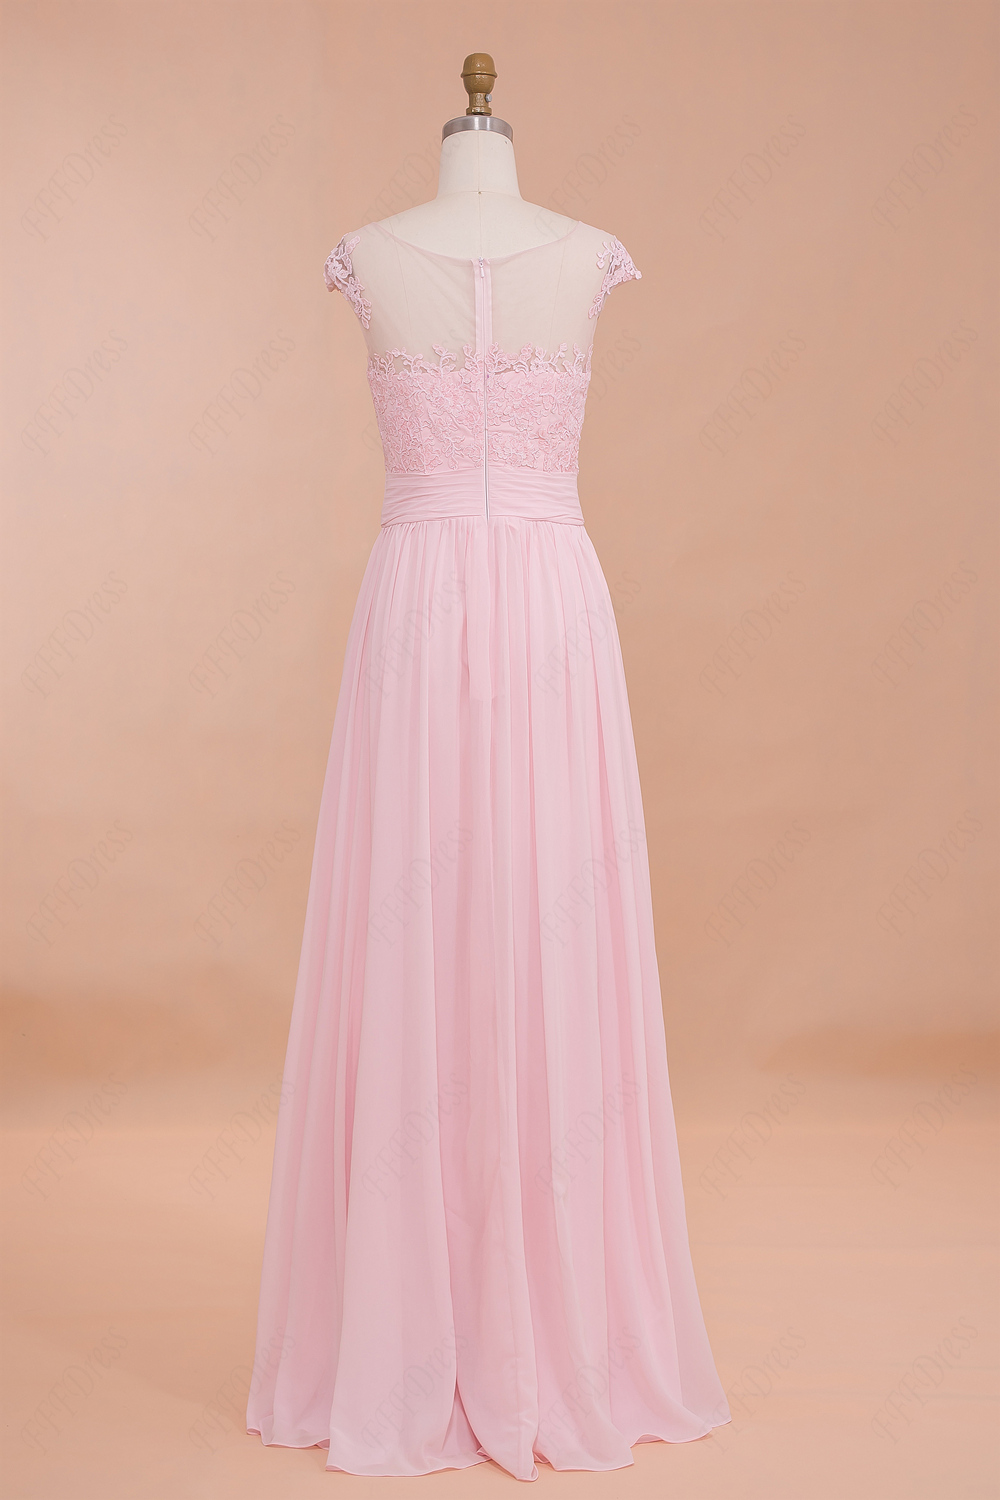 Classy modest pink prom dresses cap sleeves bridesmaid for Wedding guest dresses sale